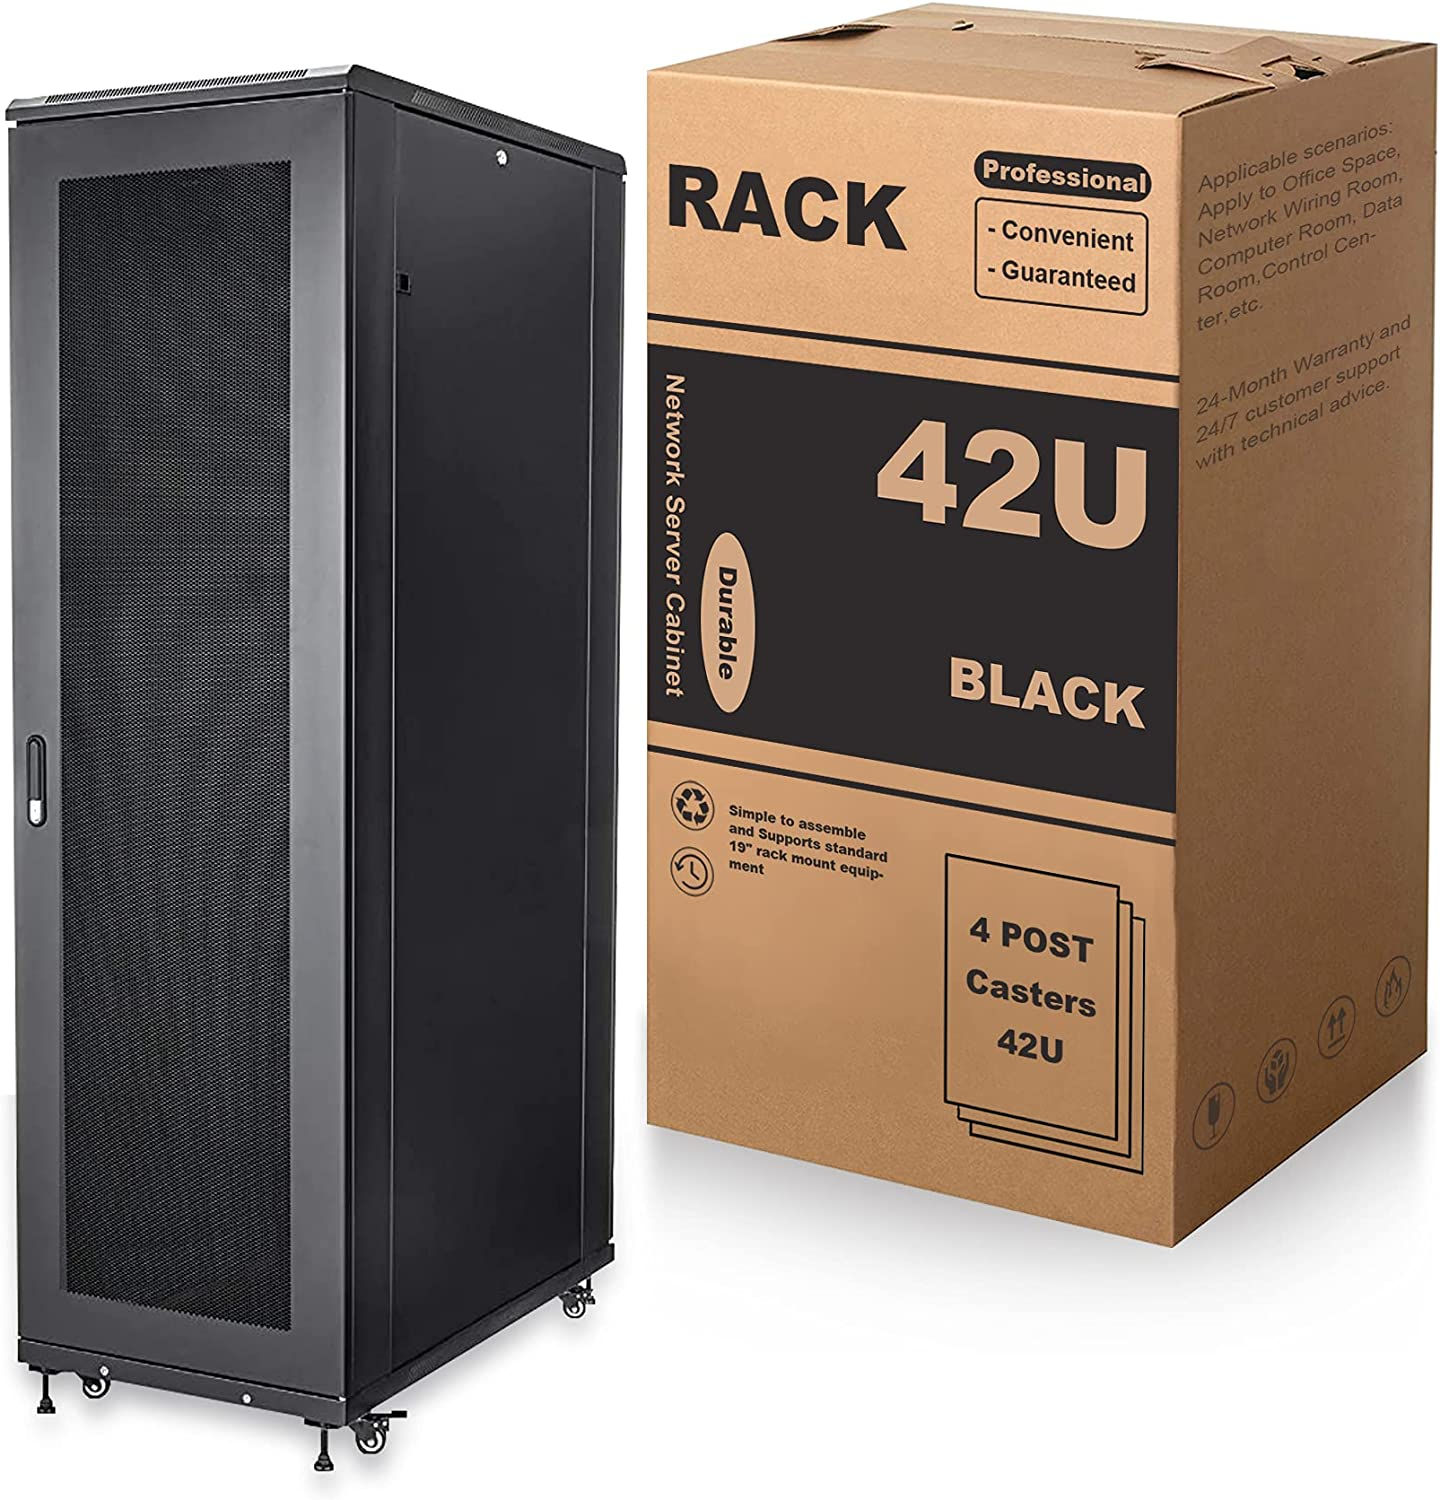 MendyNet Adjustable Depth 4-Post 42U IT Network Server Rack Cabinet with Casters, 2000lbs, Apply to Office Space, Network Wiring Room, Computer Room, Data Room,Control Center,etc.